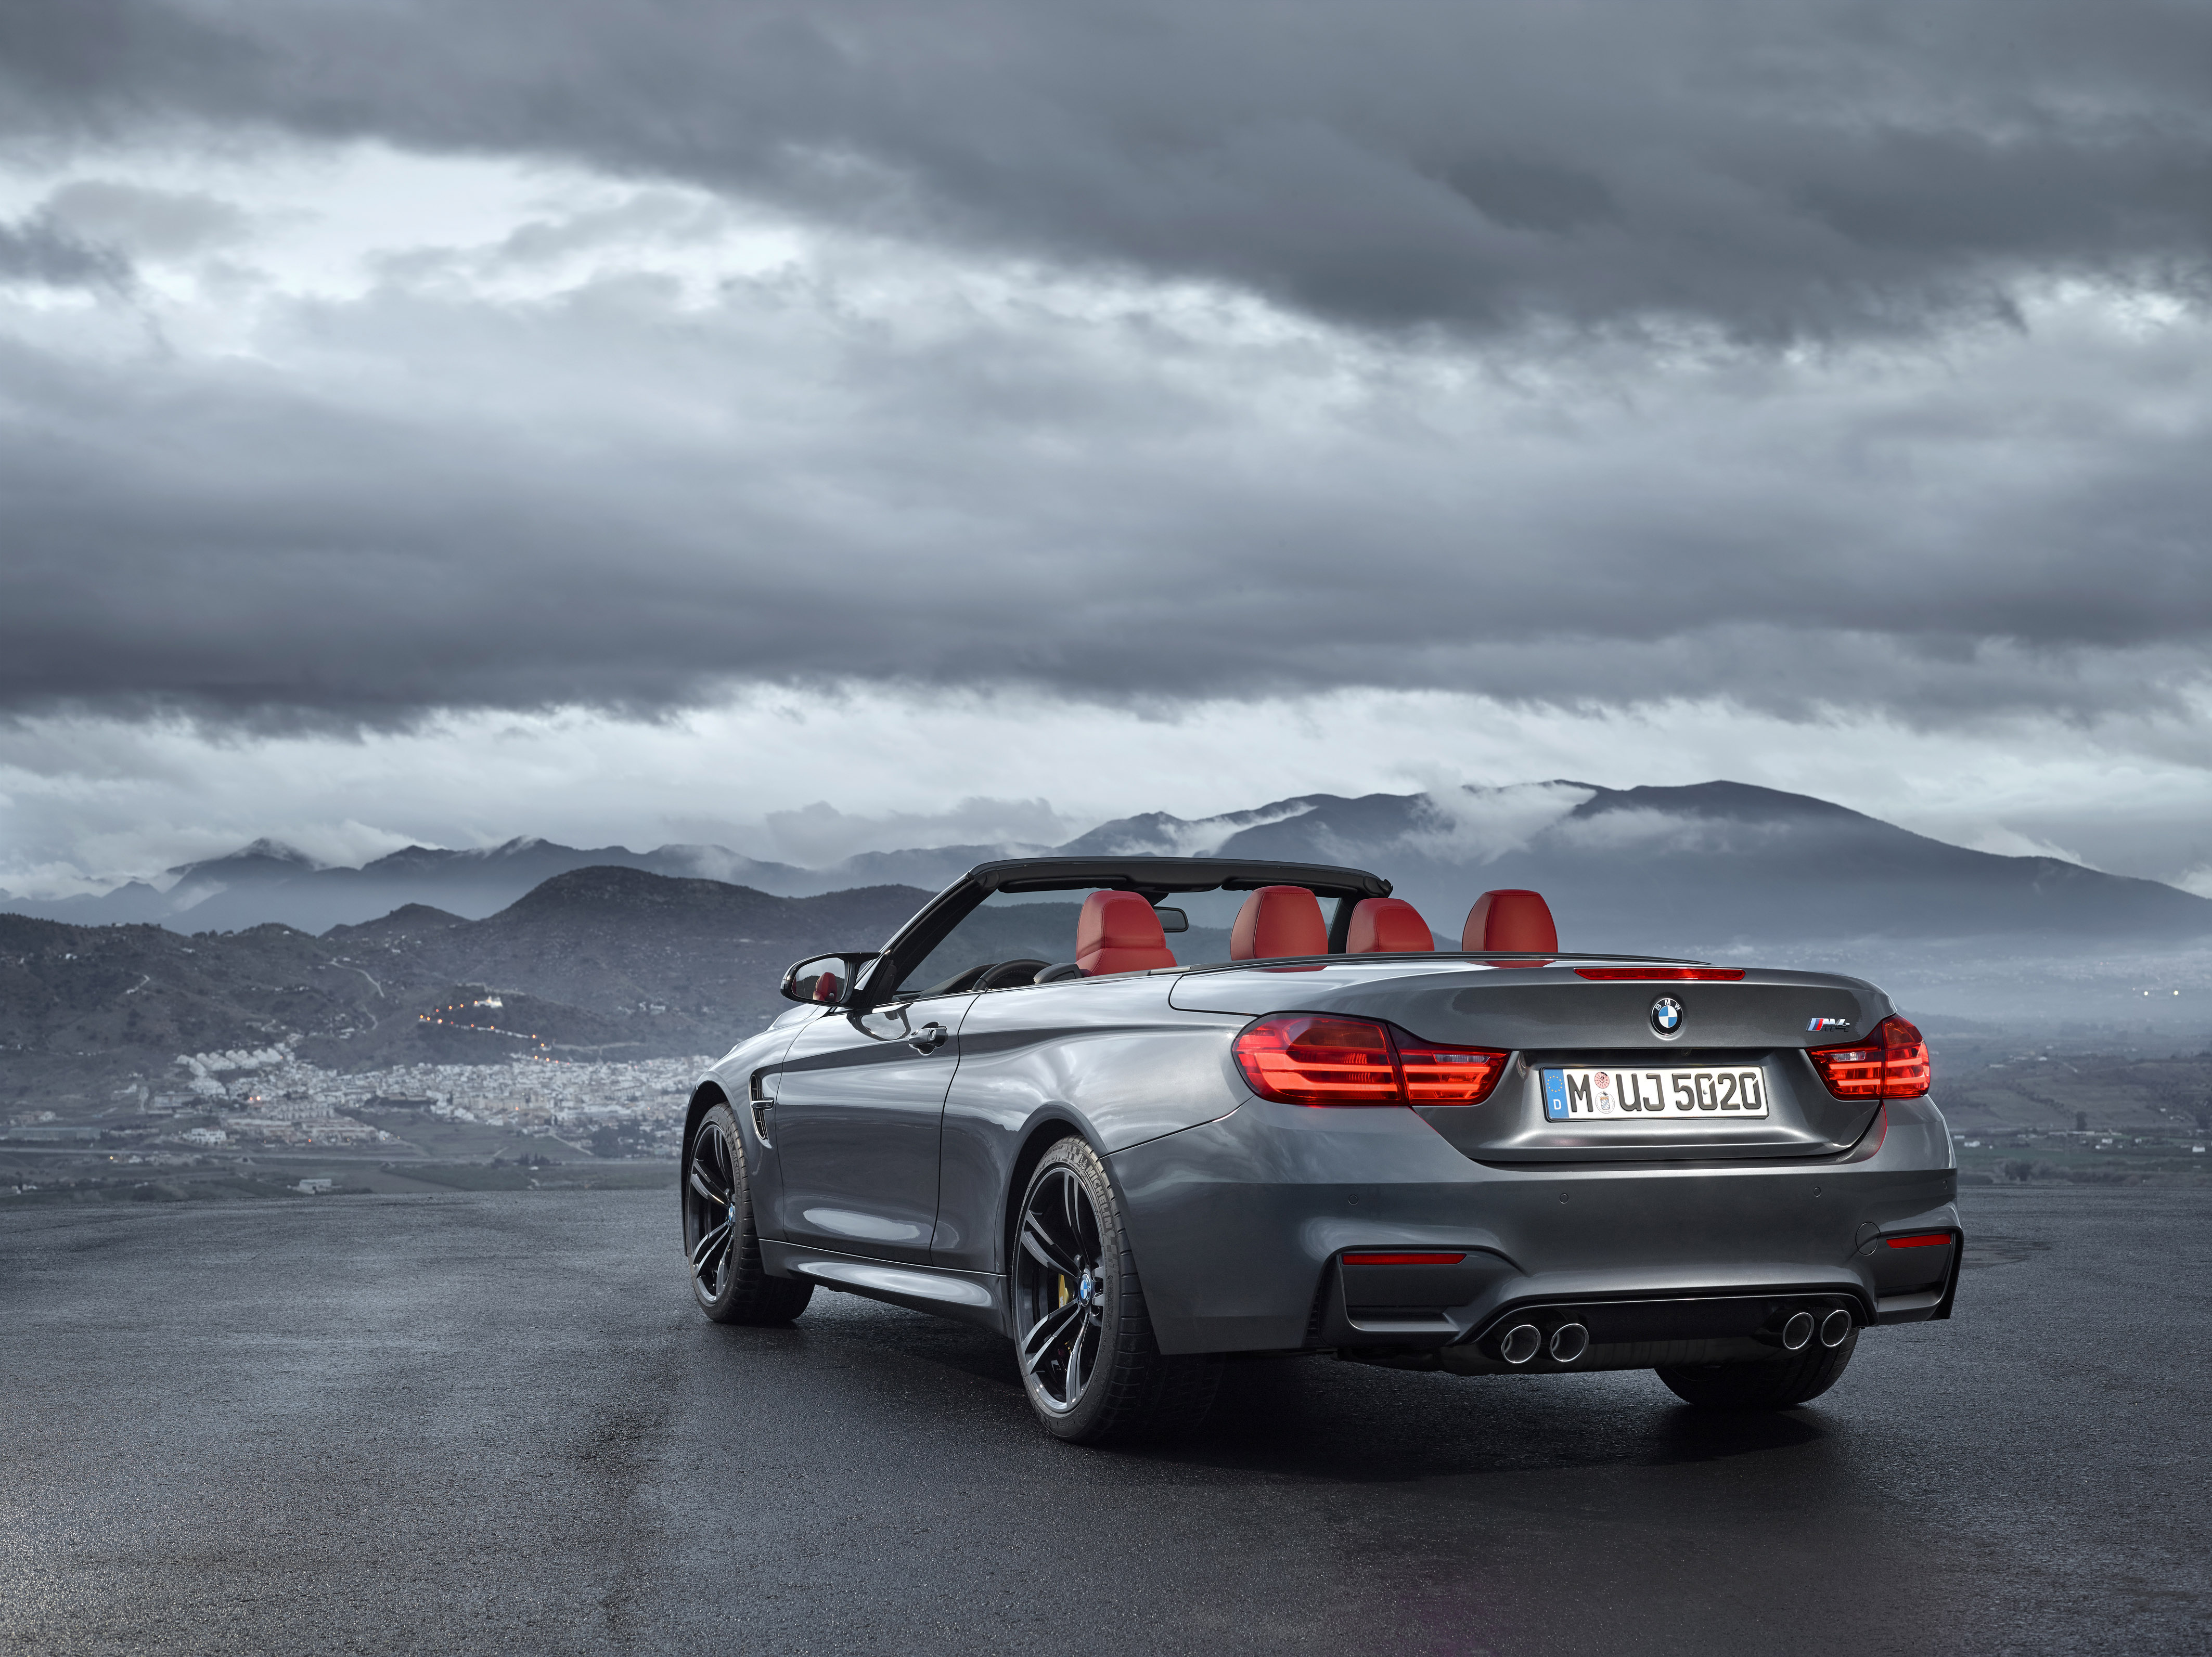 2014 Bmw M4 Convertible Just Amazing